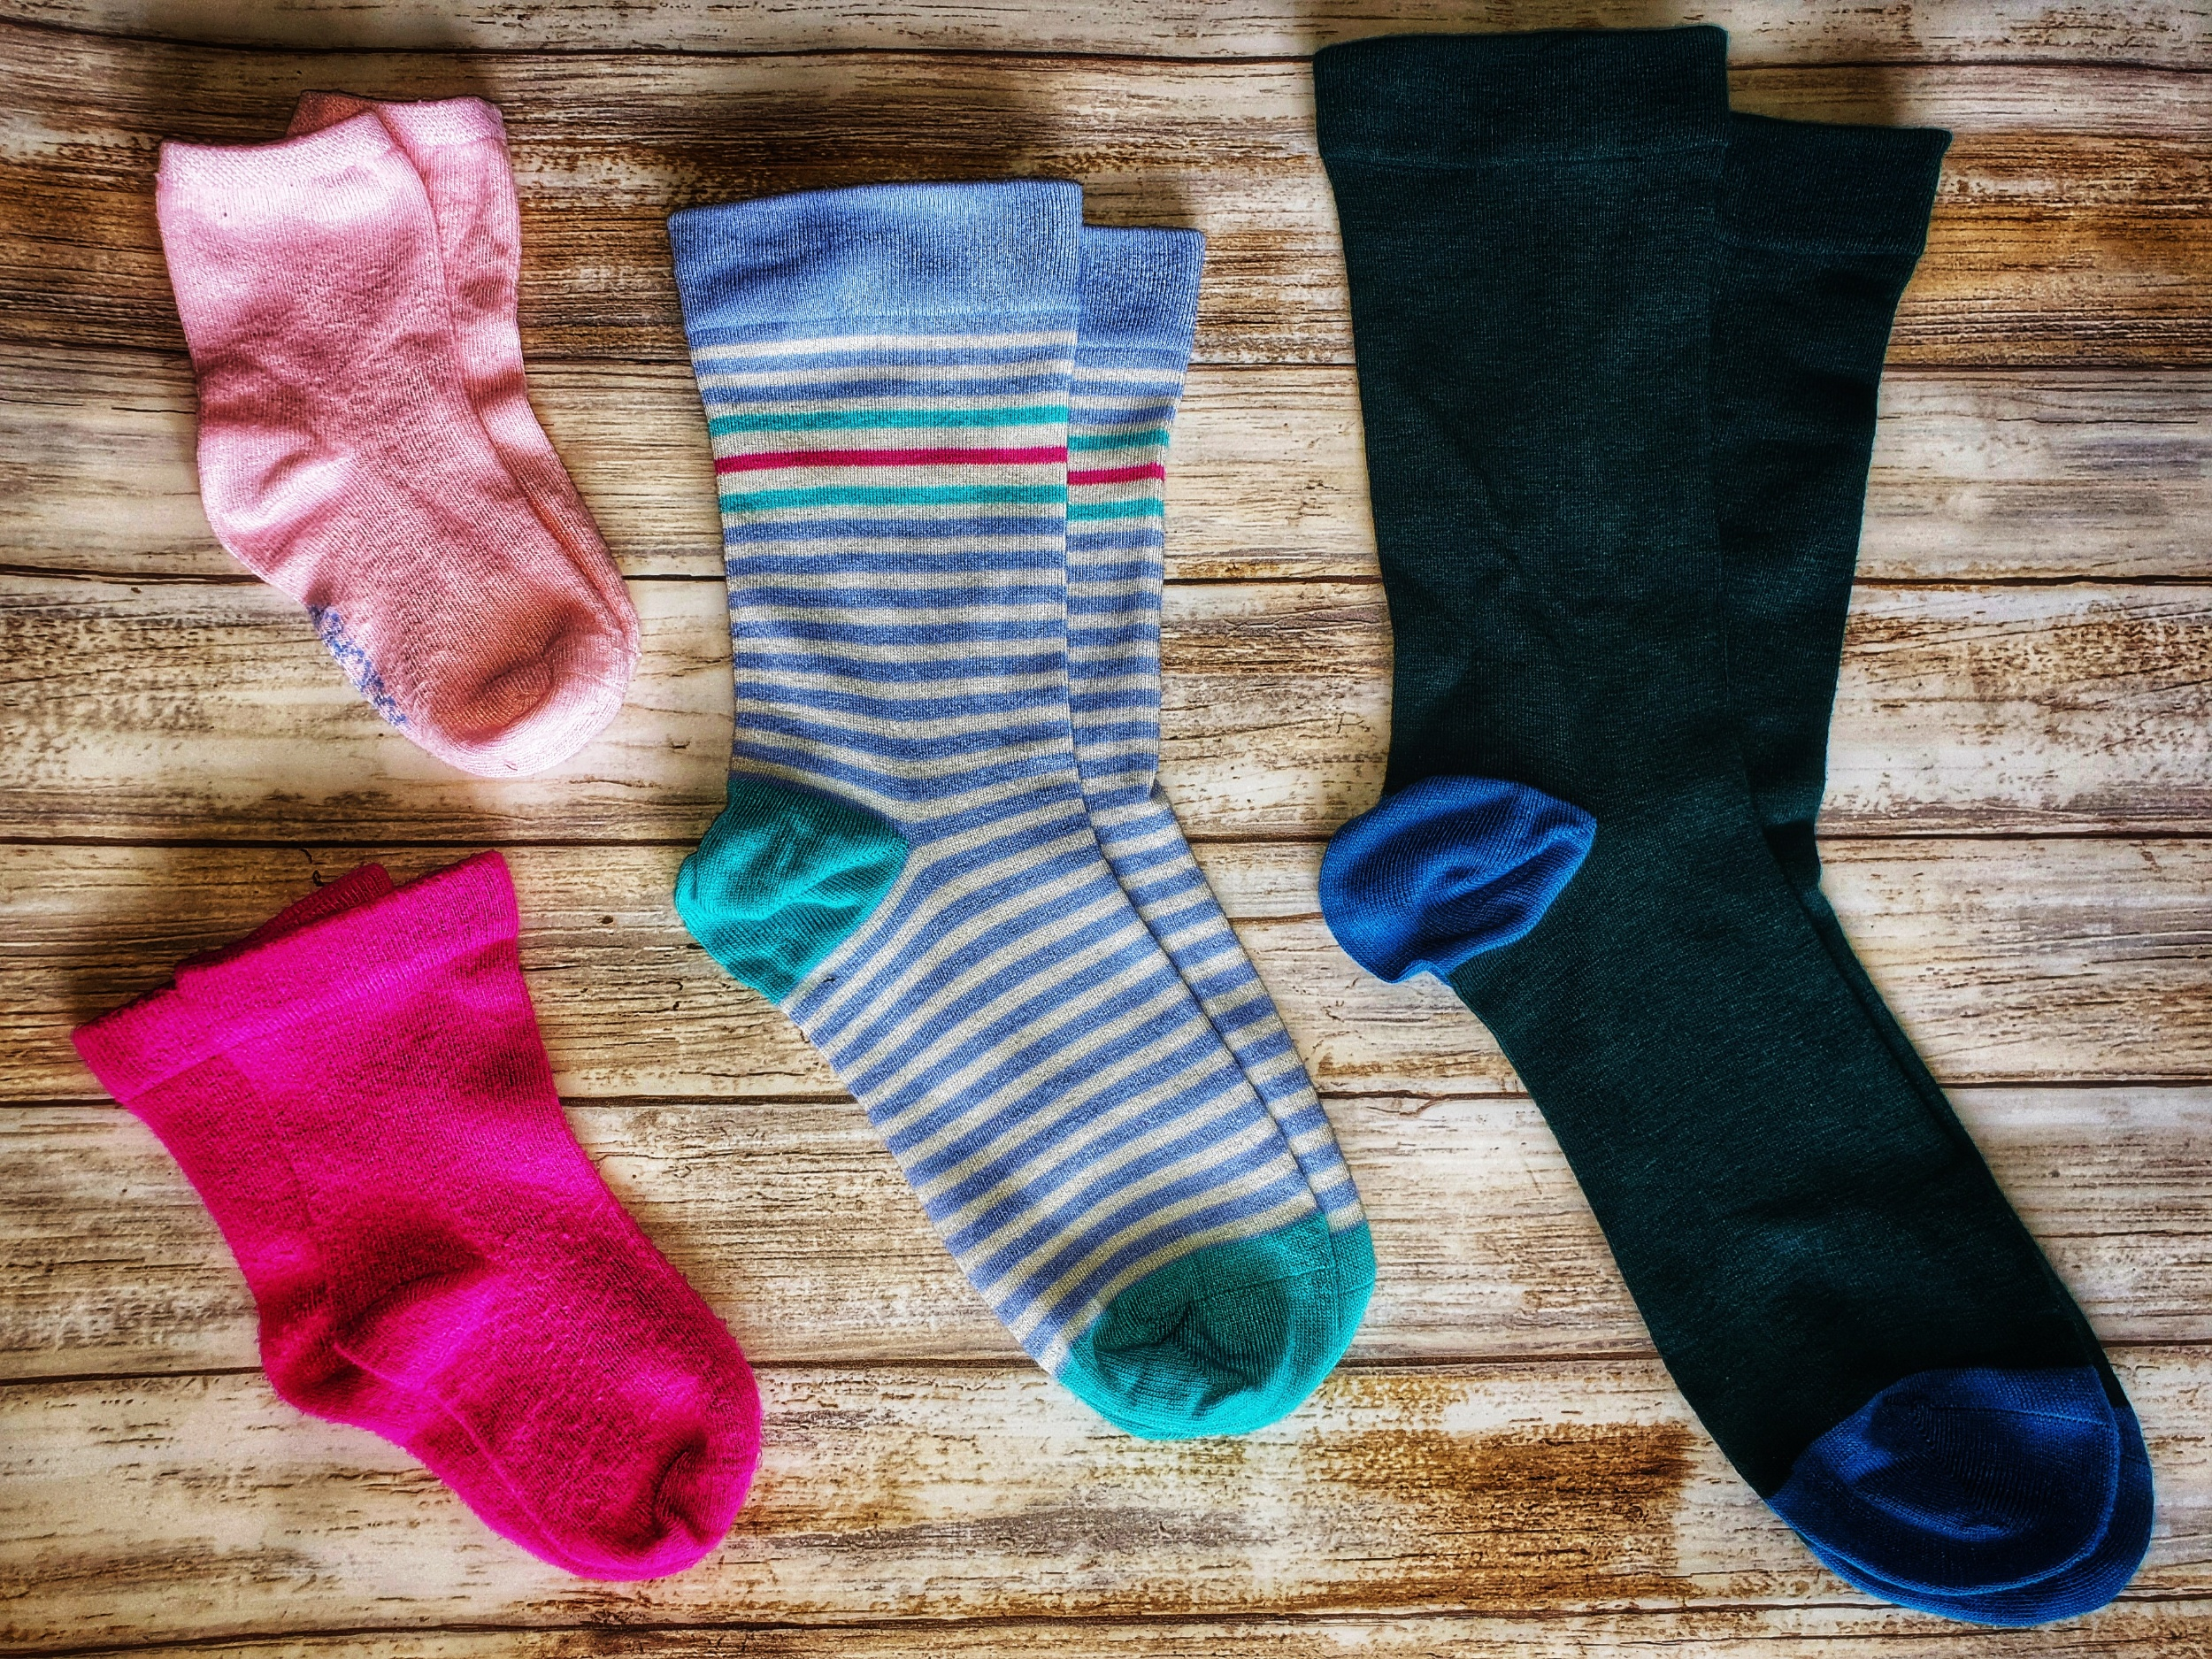 *Socks kindly gifted by The Sock Shop for an honest review.